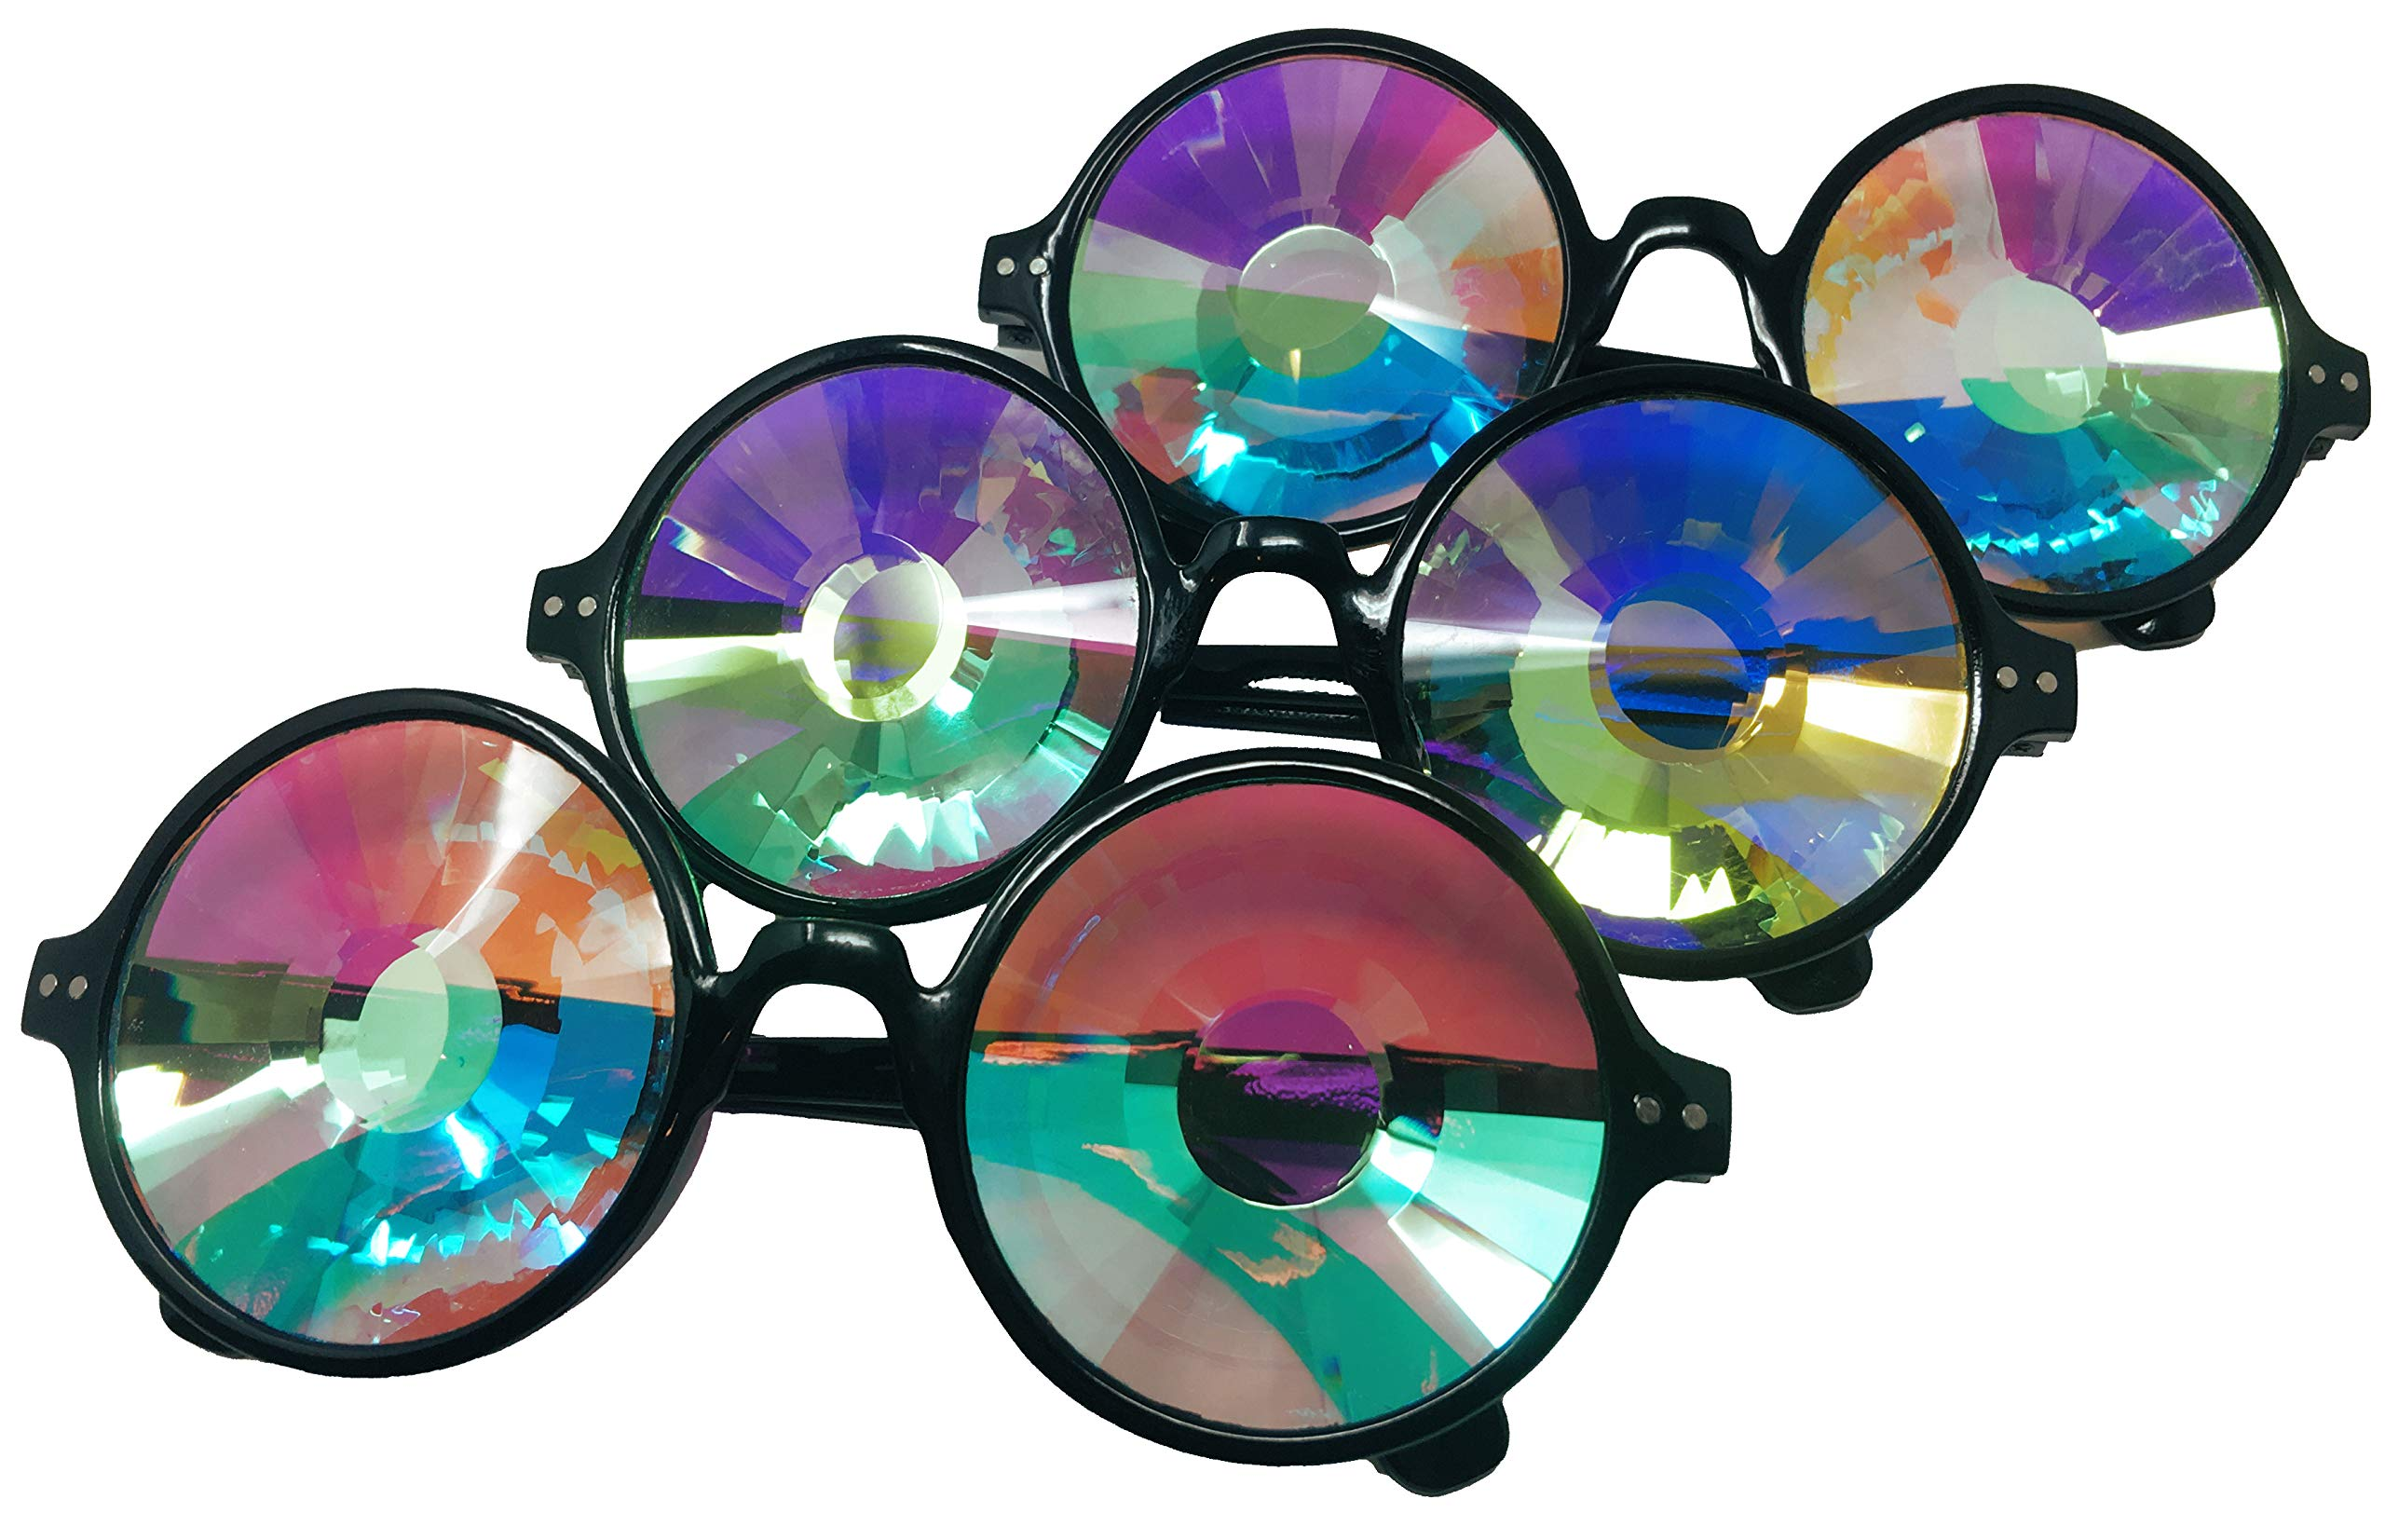 Portal, Worm Hole, Kaleidoscope, Refraction Glasses for Festivals and Raves